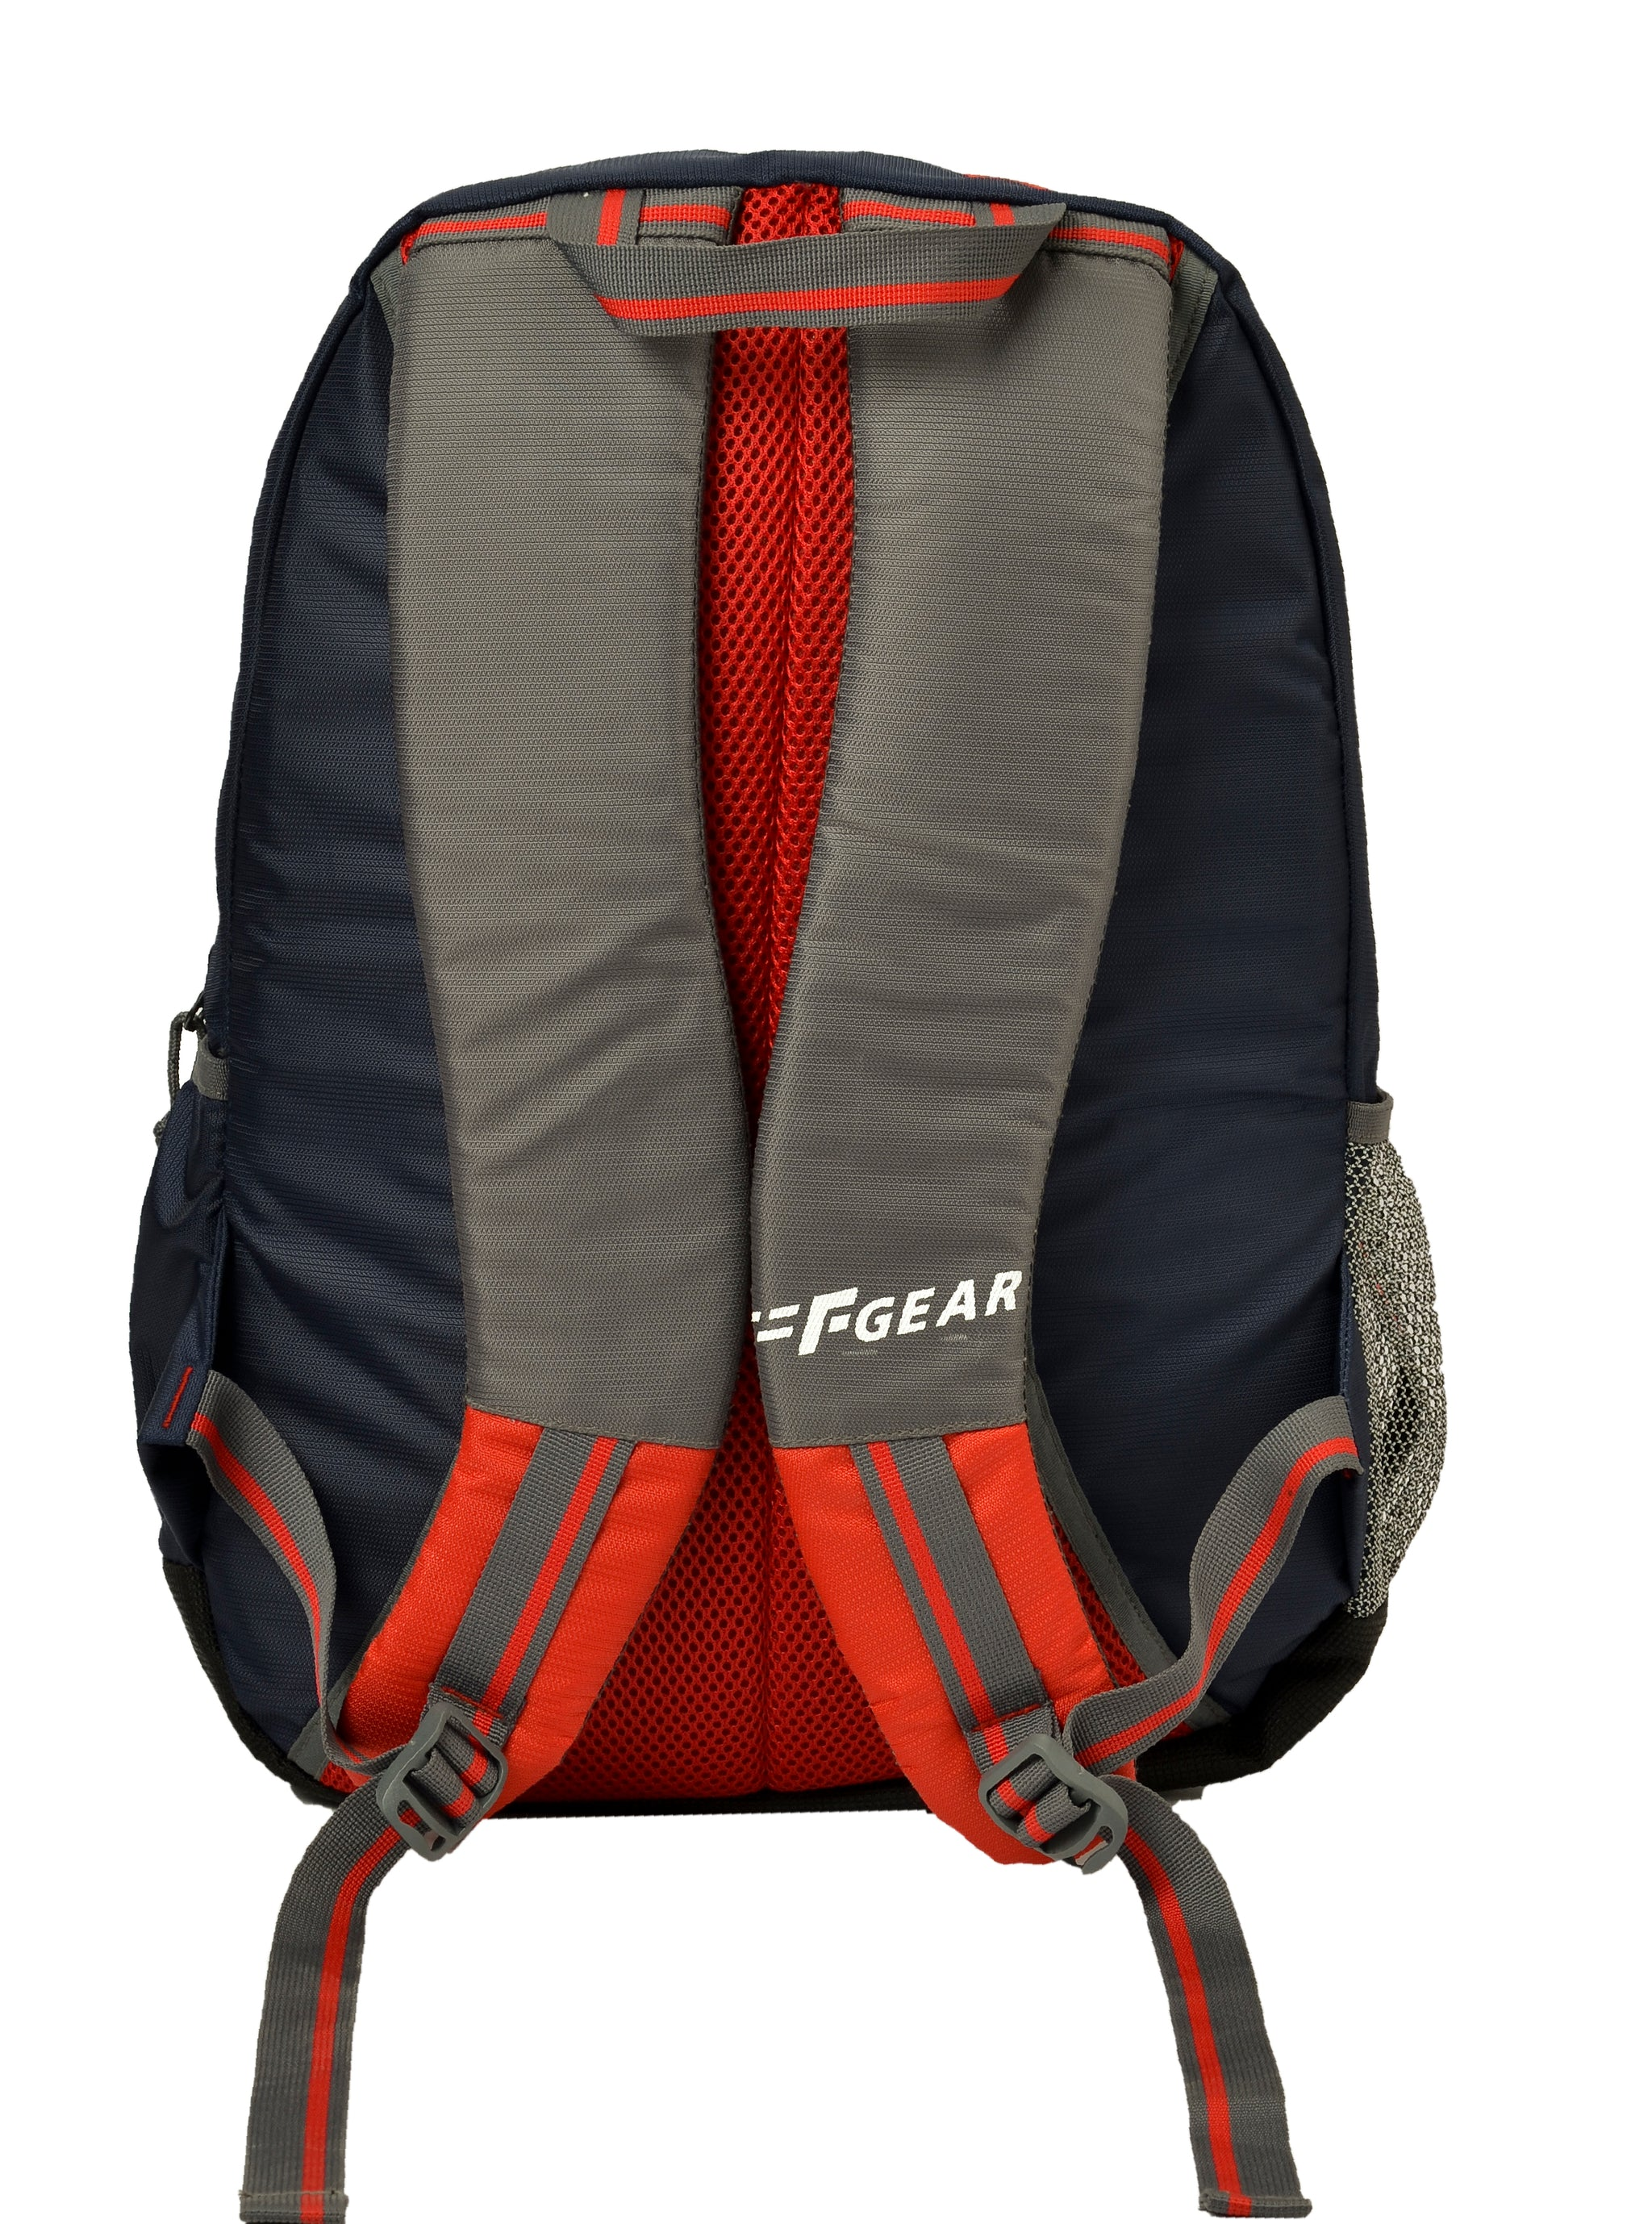 F Gear Arrive 34 Liters Backpack (Navyblue, Red Grey)